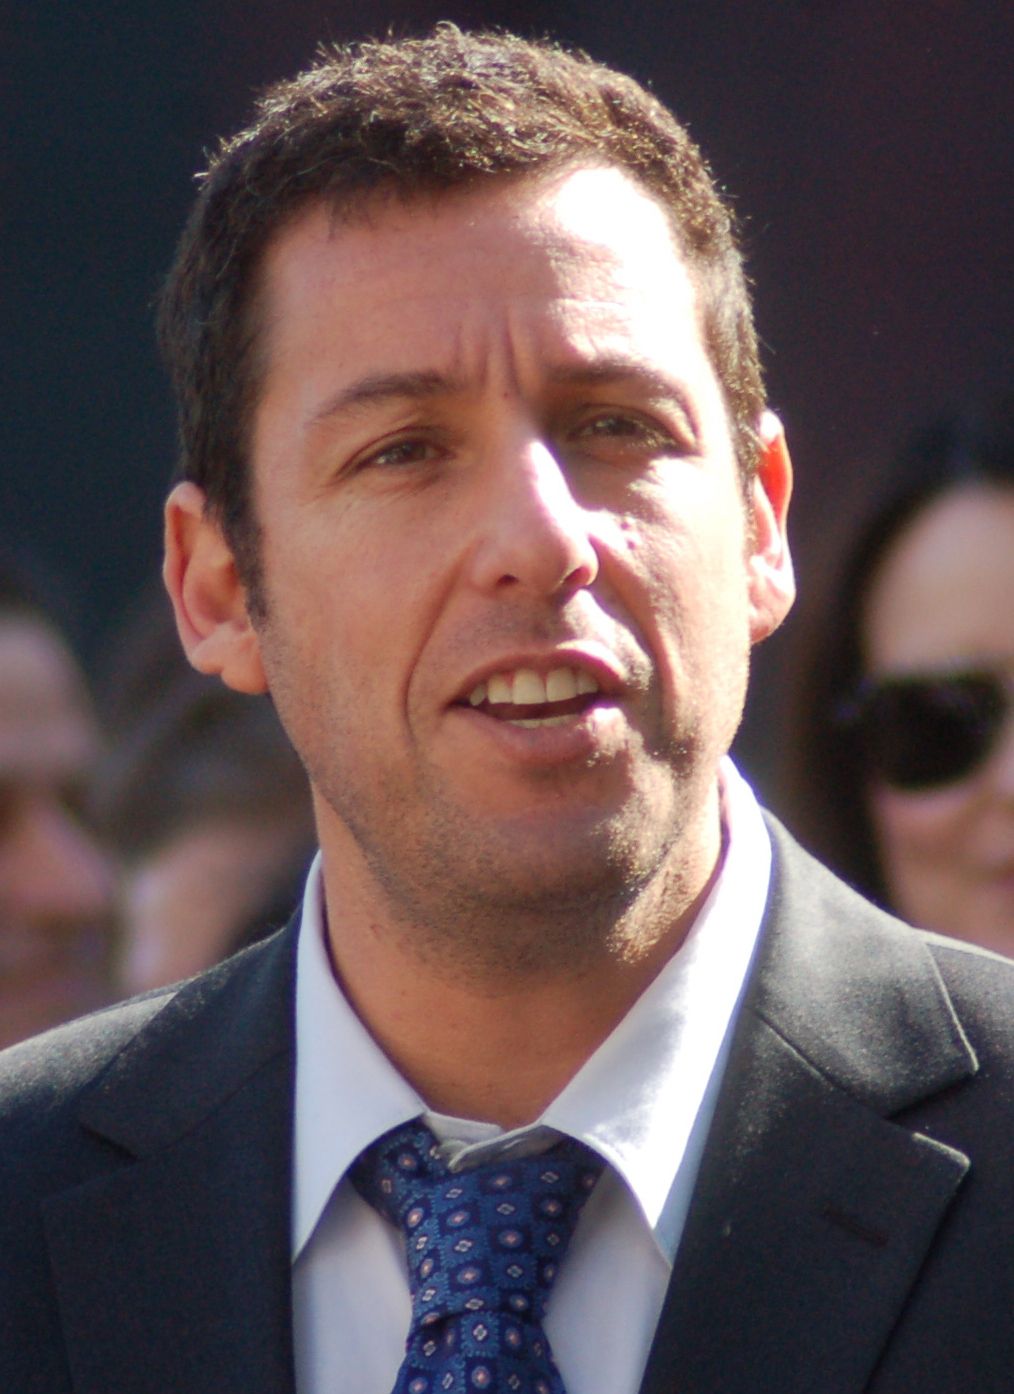 jared sandler wikipediajared sandler and adam sandler, jared sandler wikipedia, jared sandler, jared sandler wiki, jared sandler actor, jared sandler brother, jared sandler blended, jared sandler parents, jared sandler big daddy, jared sandler biography, jared sandler baseball, jared sandler movies, jared sandler rangers, jared sandler family, jared sandler texas rangers, jared sandler espn, jared sandler benchwarmers, jared sandler grown ups 2, jared sandler attorney, jared sandler biografia